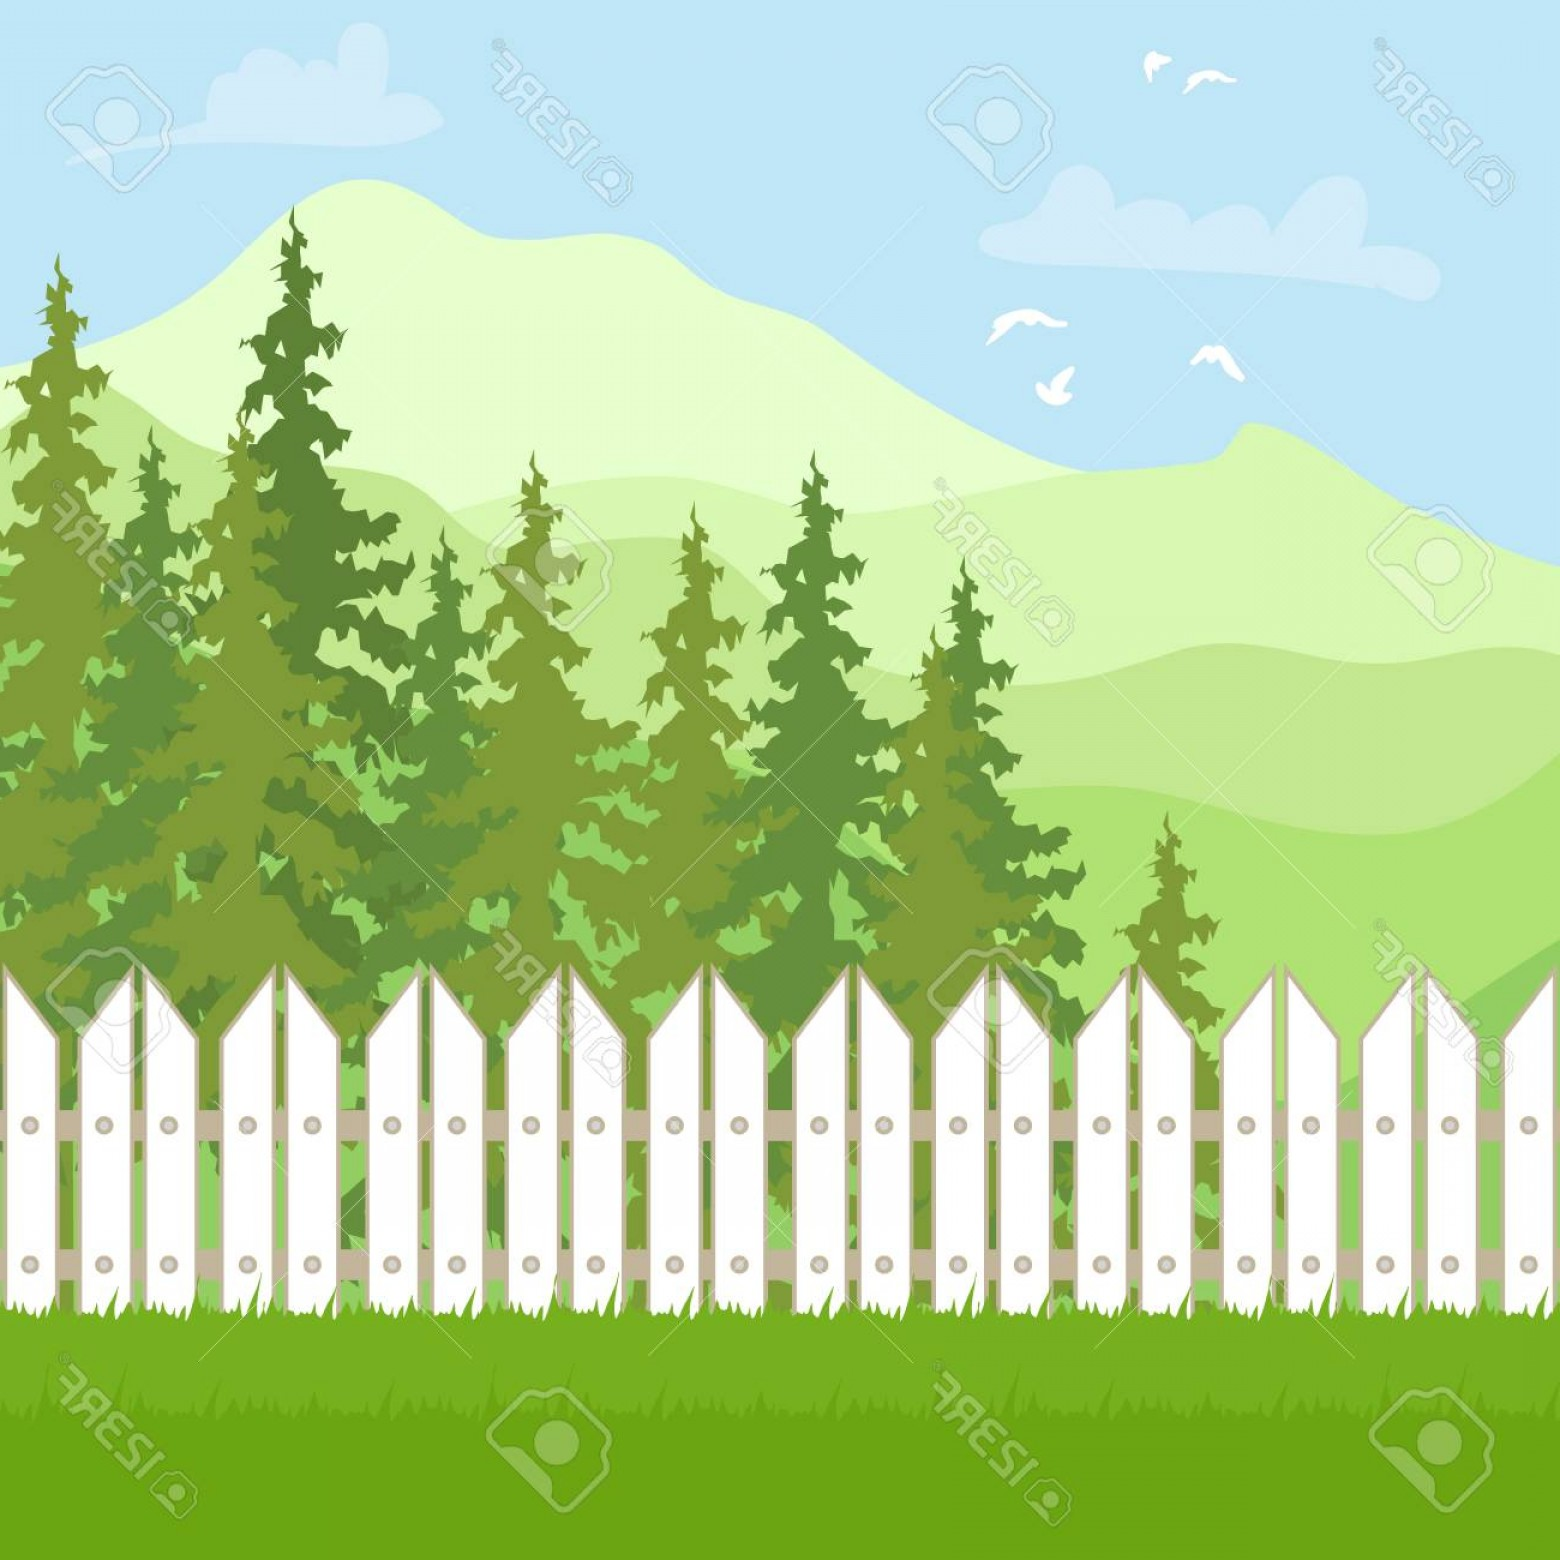 Outdoor Fence Vector: Photostock Vector Summer Outdoor Recreation Mountain Landscape With Forest And Fence Vector Illustration